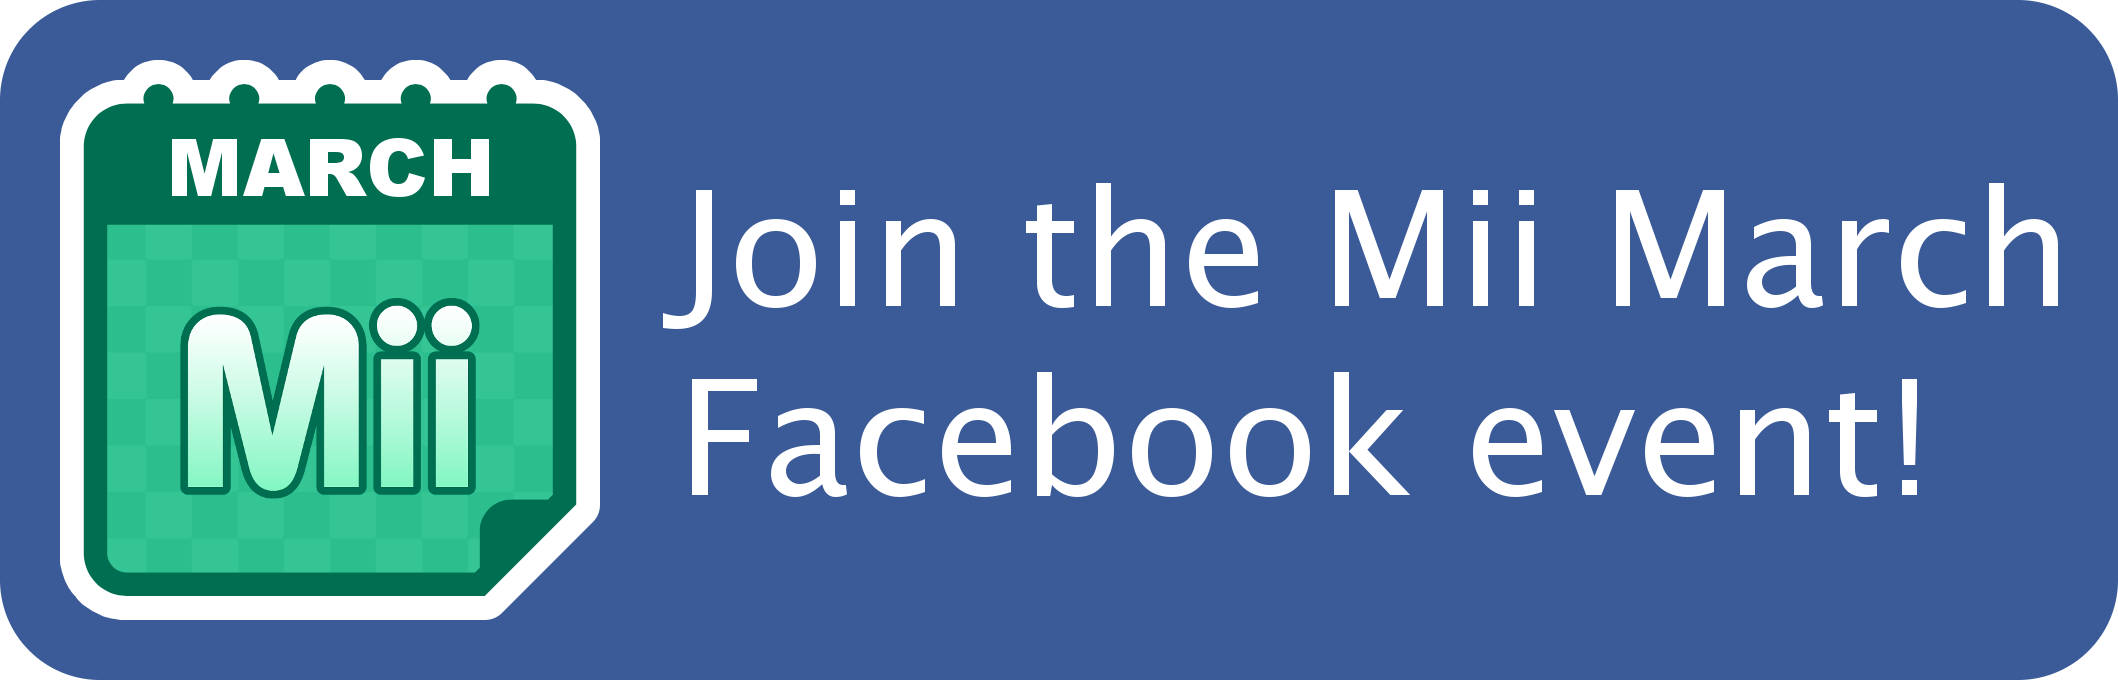 Join the Mii March Facebook event!